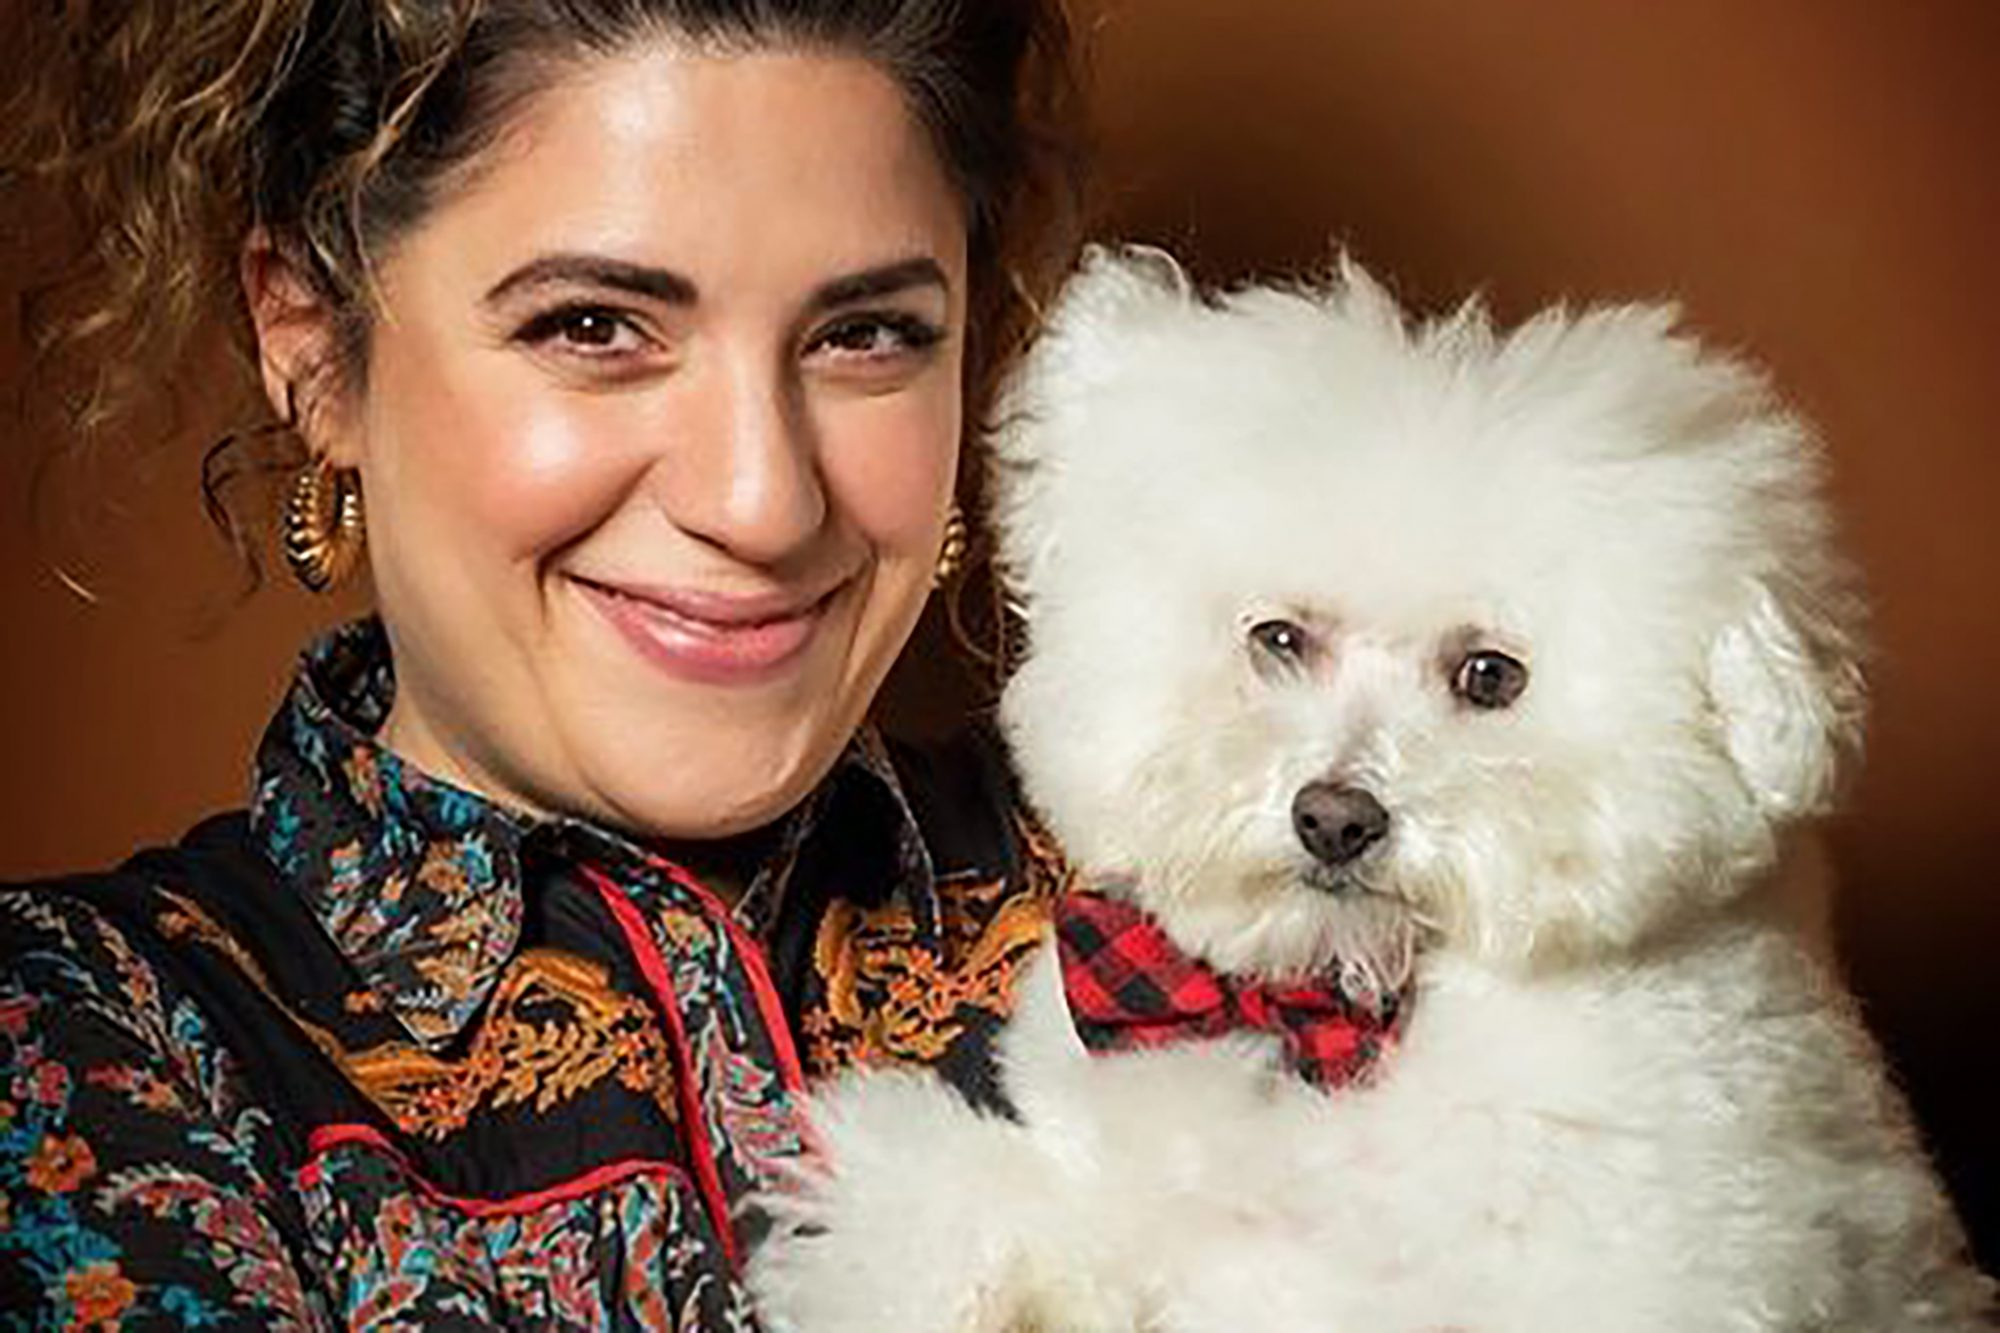 Portrait of dog groomer Jess Rona holding a white fluffy dog that has a bowtie